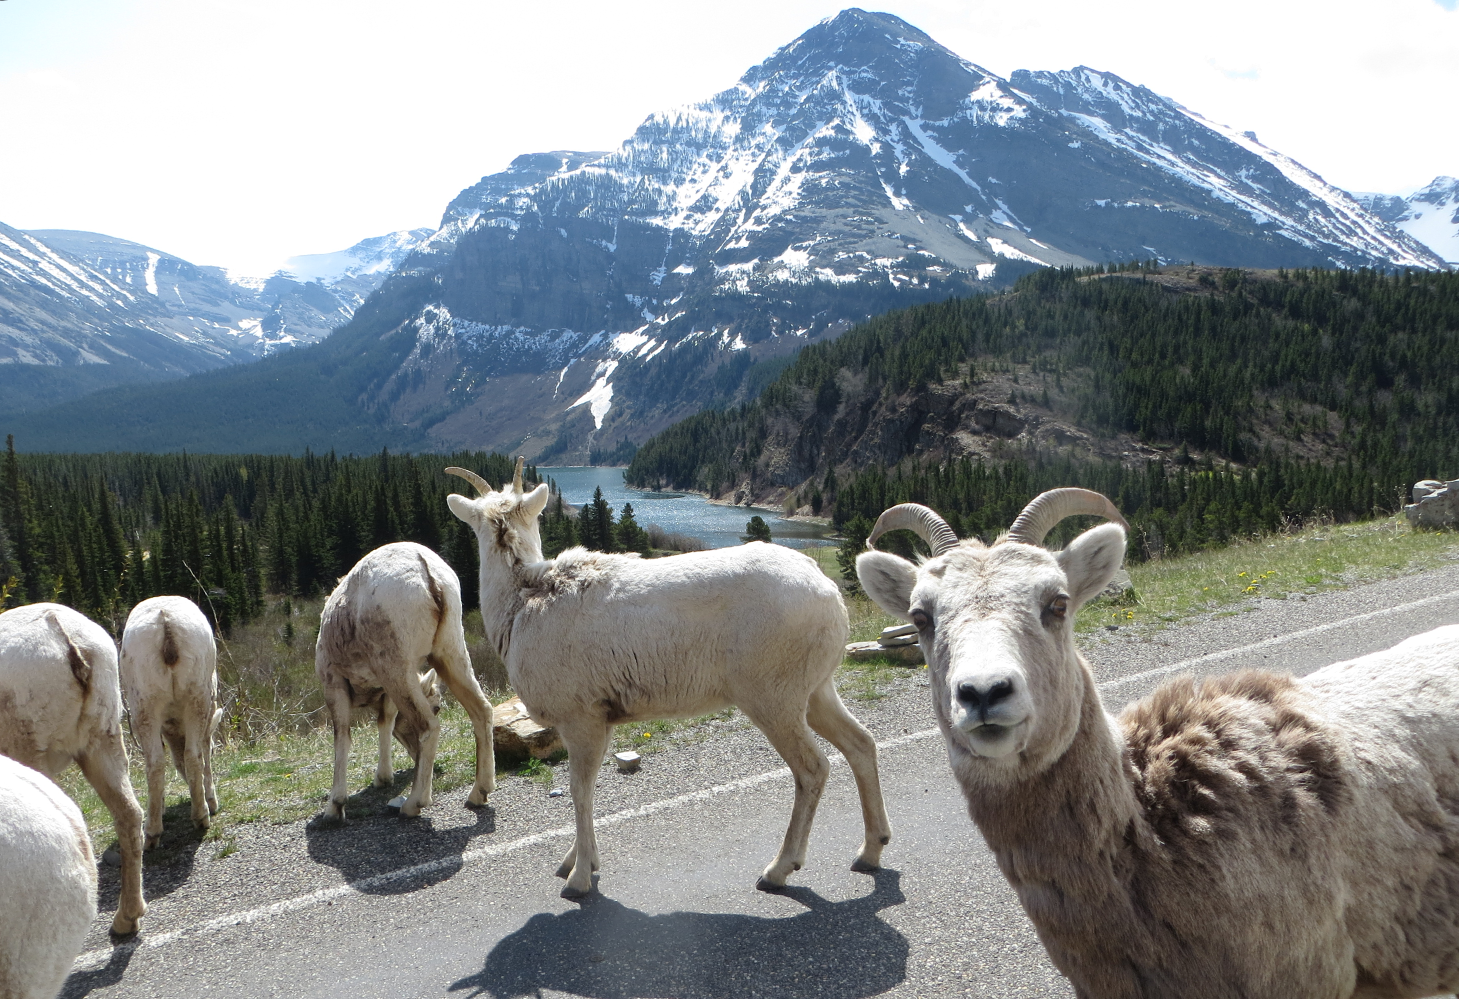 A herd of bighorn sheep graze alongside a road with a lake and mountains in the distance